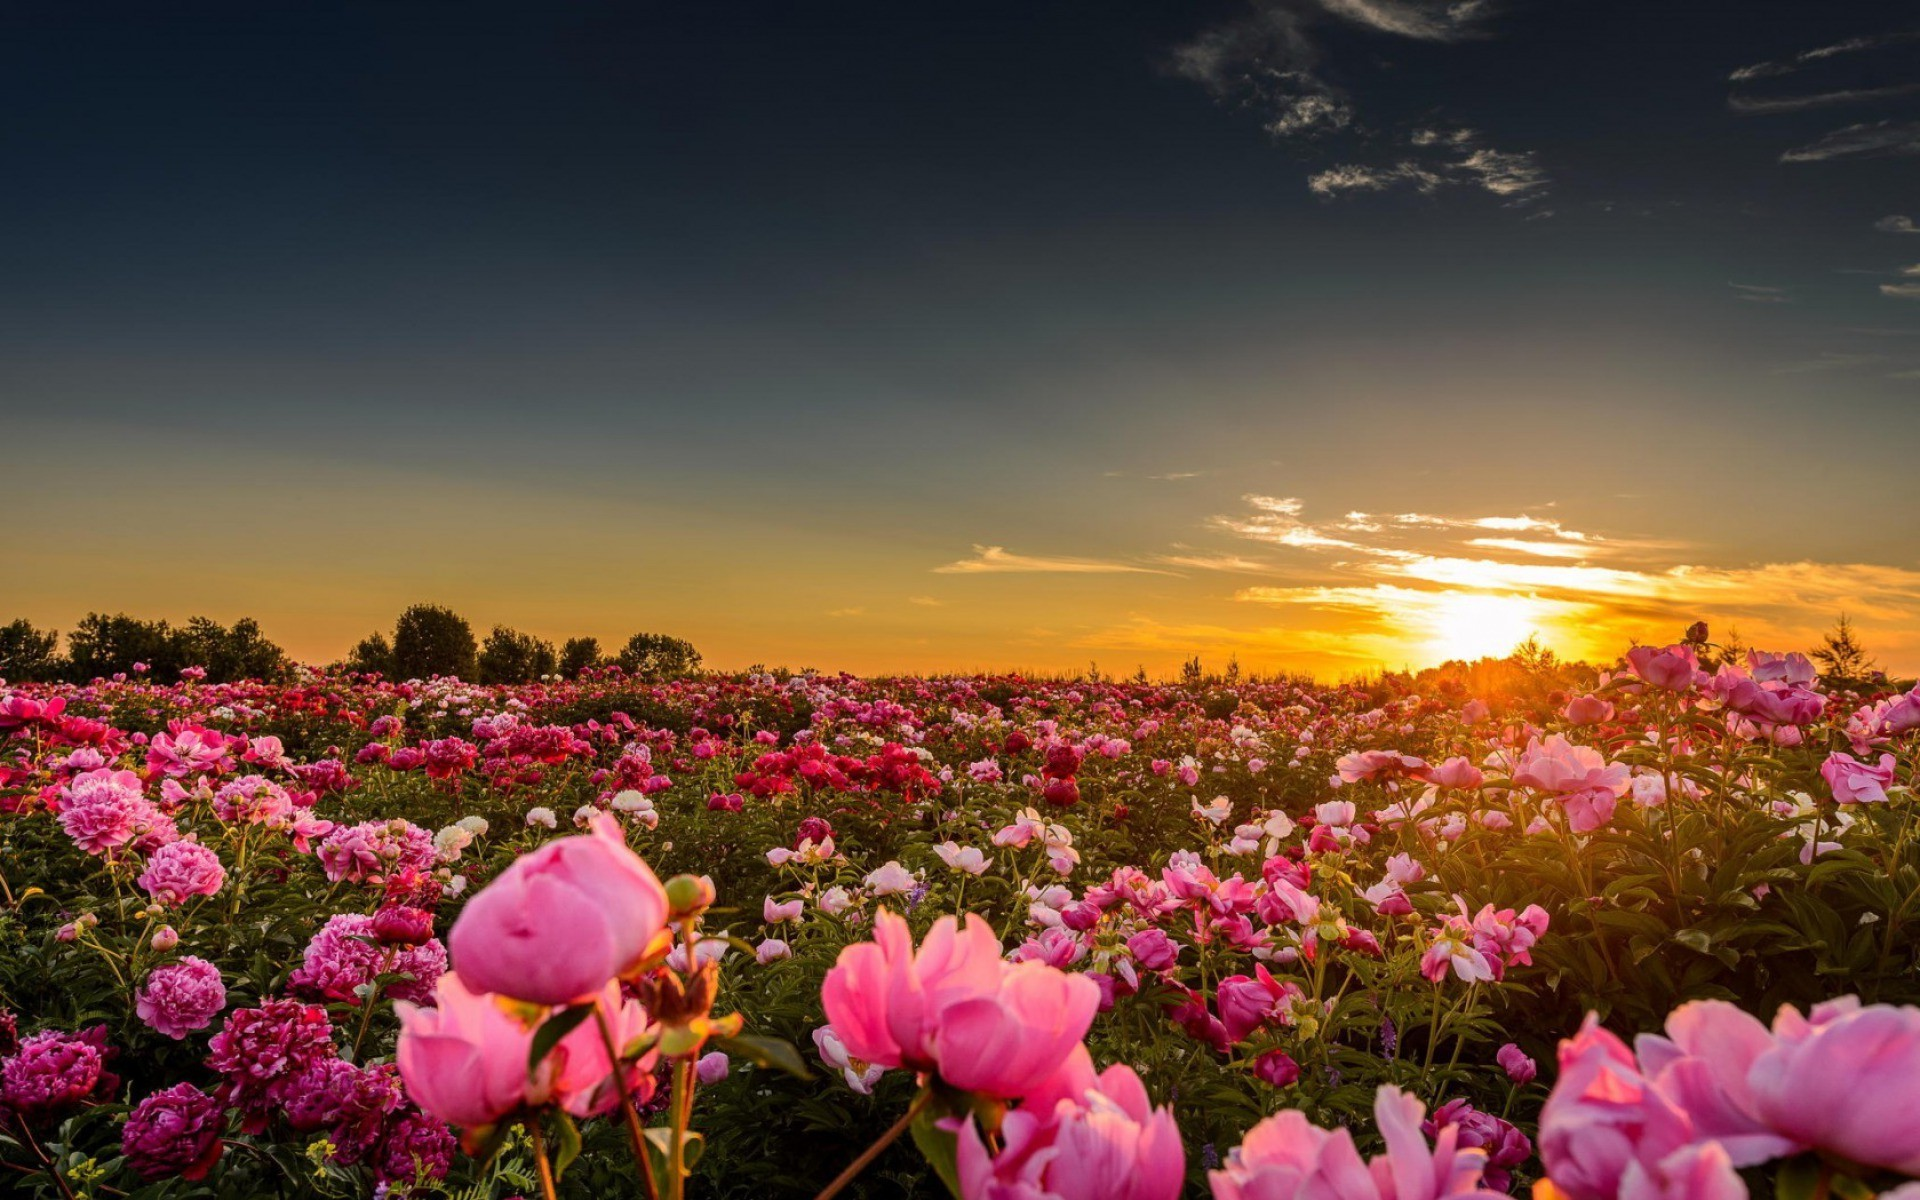 1920x1200 wallpapers pink peony desktop - photo #49. sunset, Sunlight, Flowers, Rose,  Pink Roses, Nature .